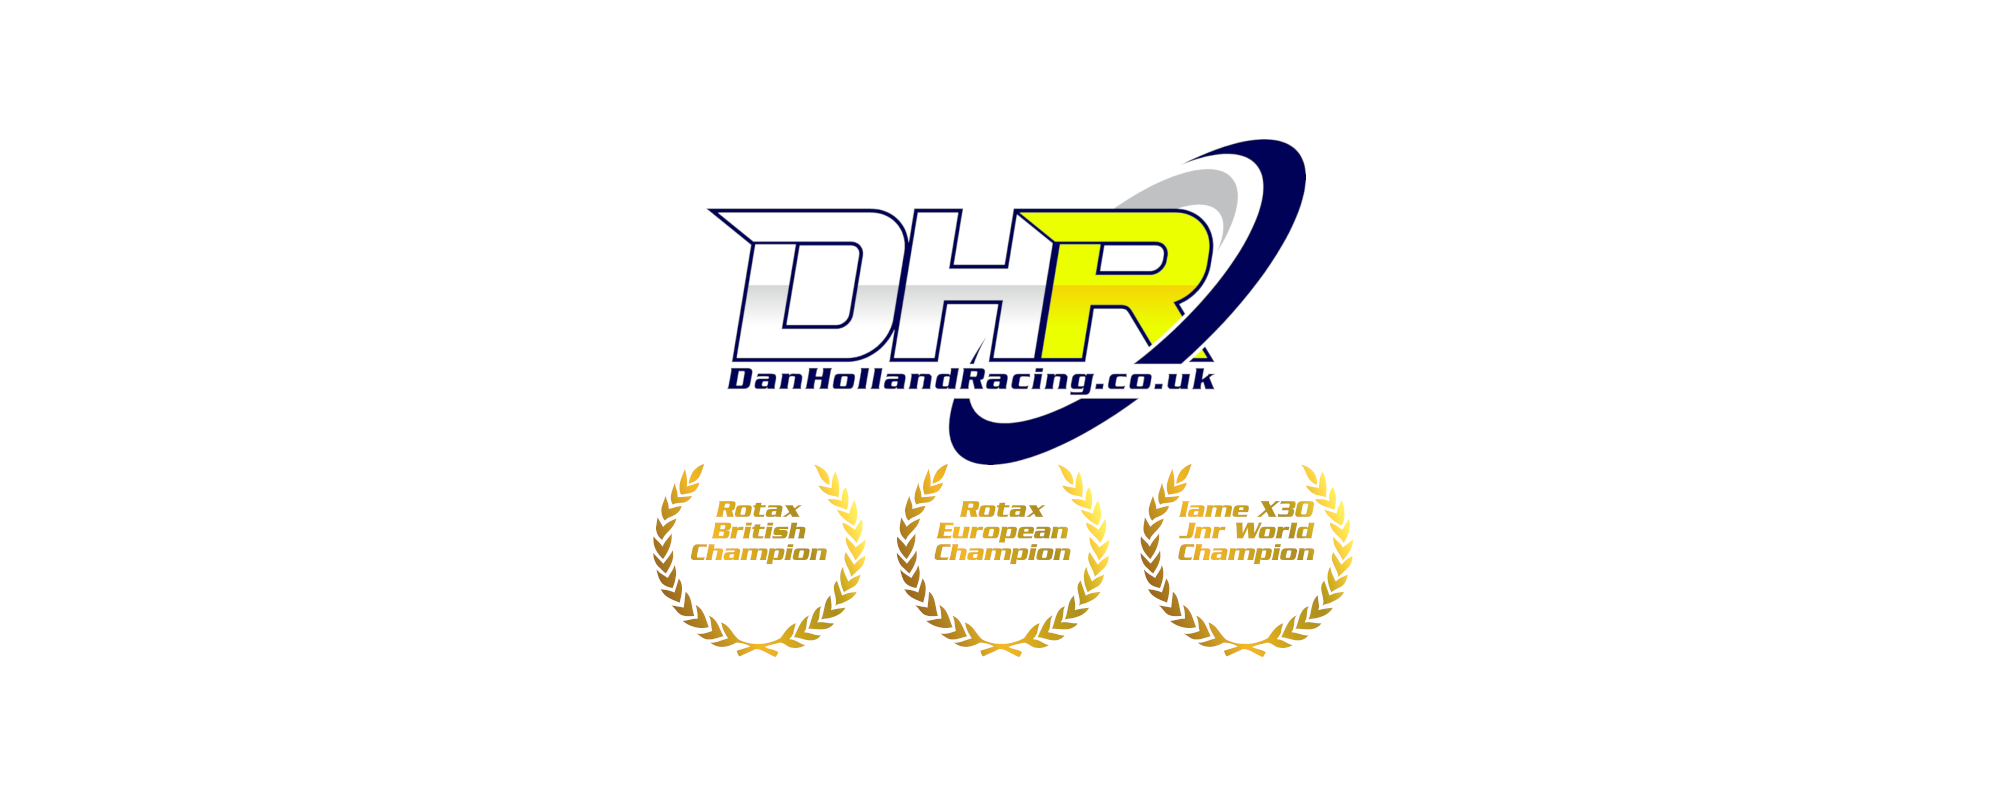 images/index/1dhr_world_champions.png